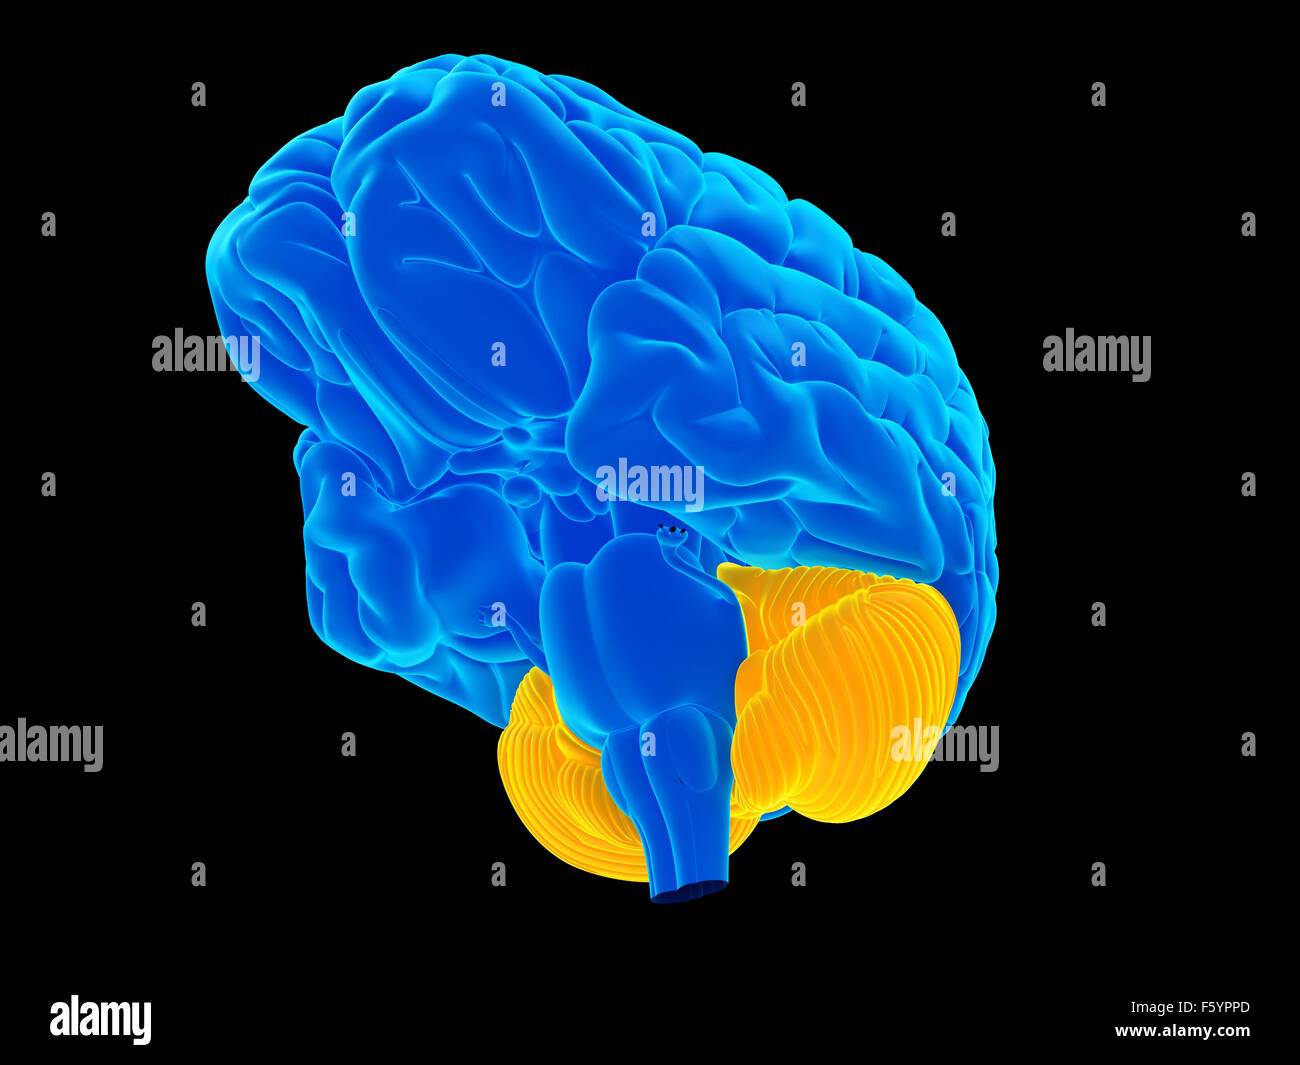 medically accurate illustration of the cerebellum - Stock Image